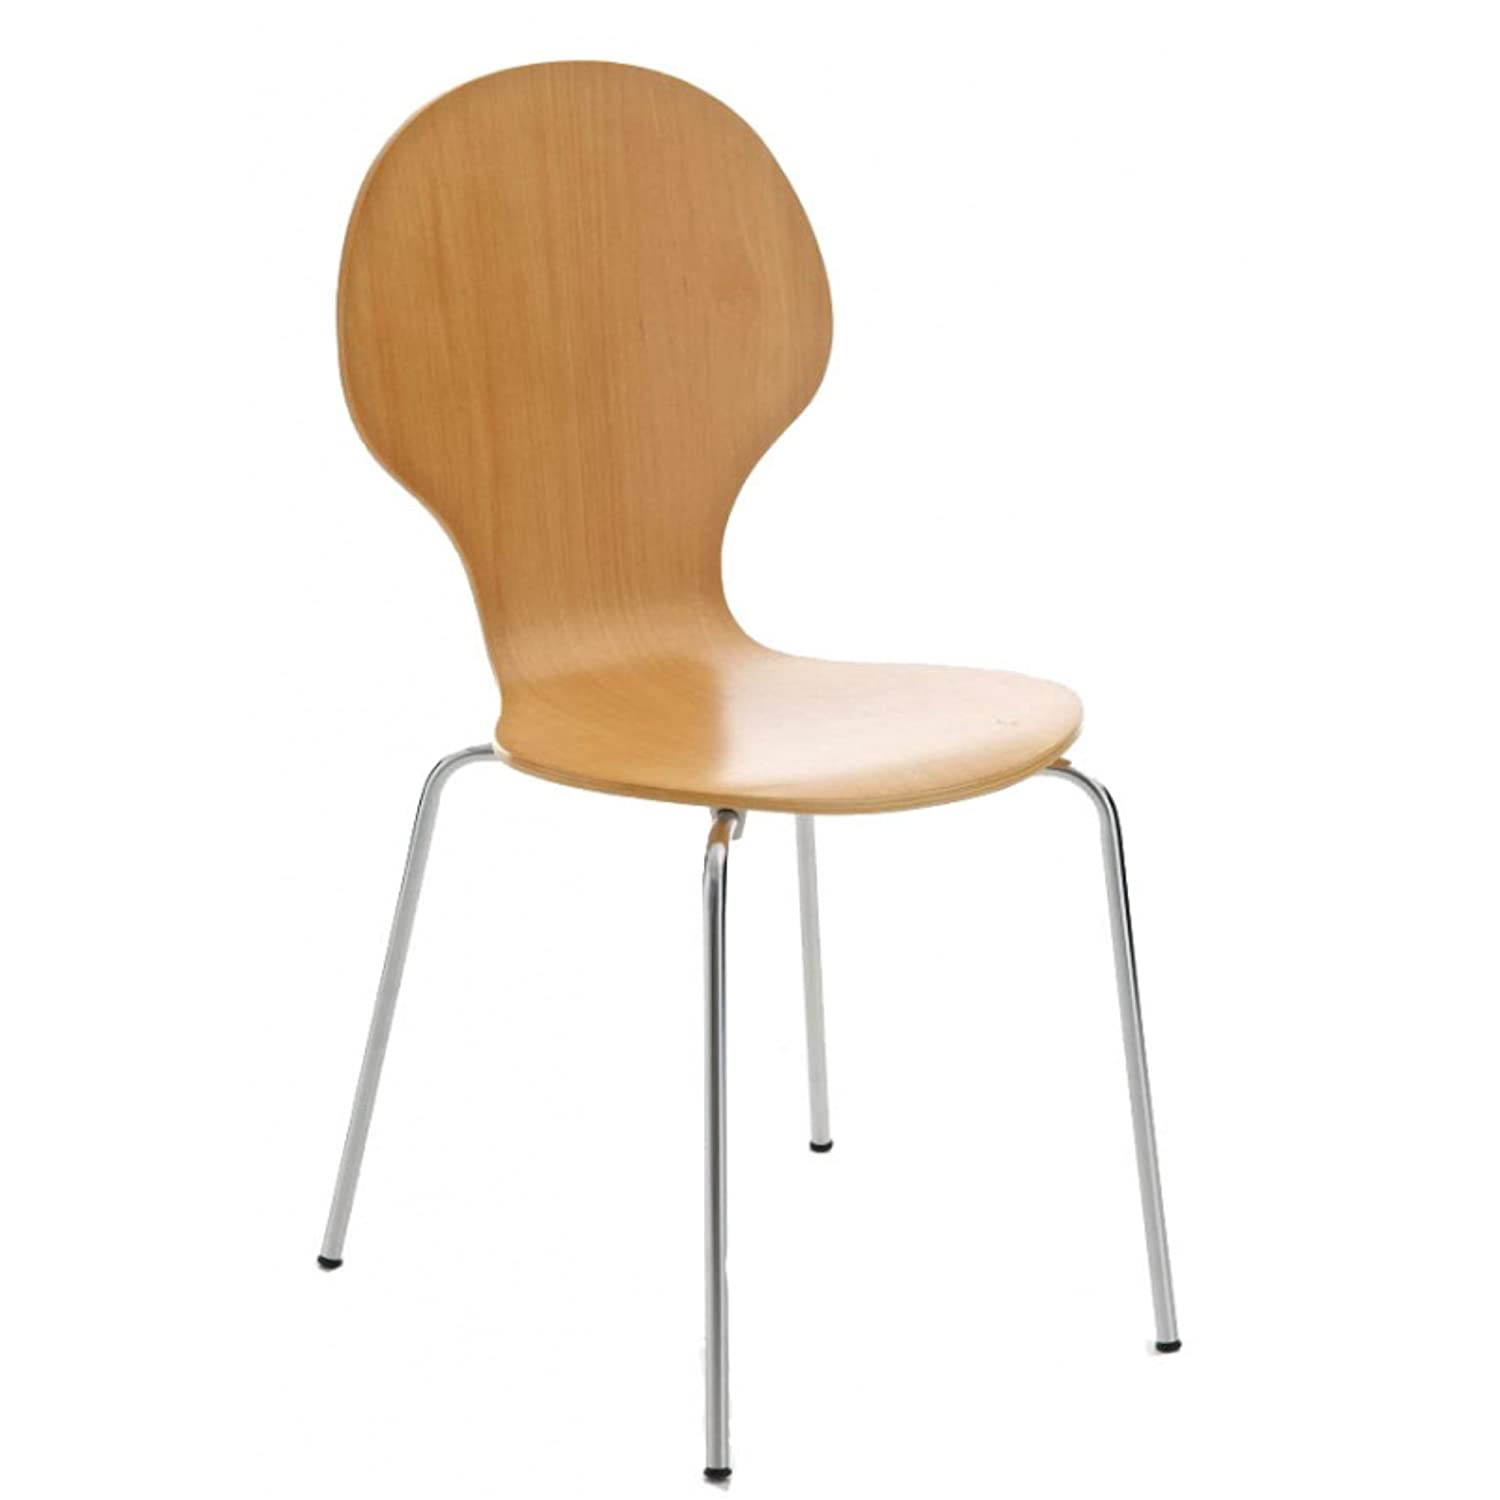 Your Price Furniture.com Kimberley Dining Set Natural Table and 4 Natural Chrome Metal Keeler Style Stackable Dining Chairs Kitchen Cafe Bistro Chairs /& Small Round Table